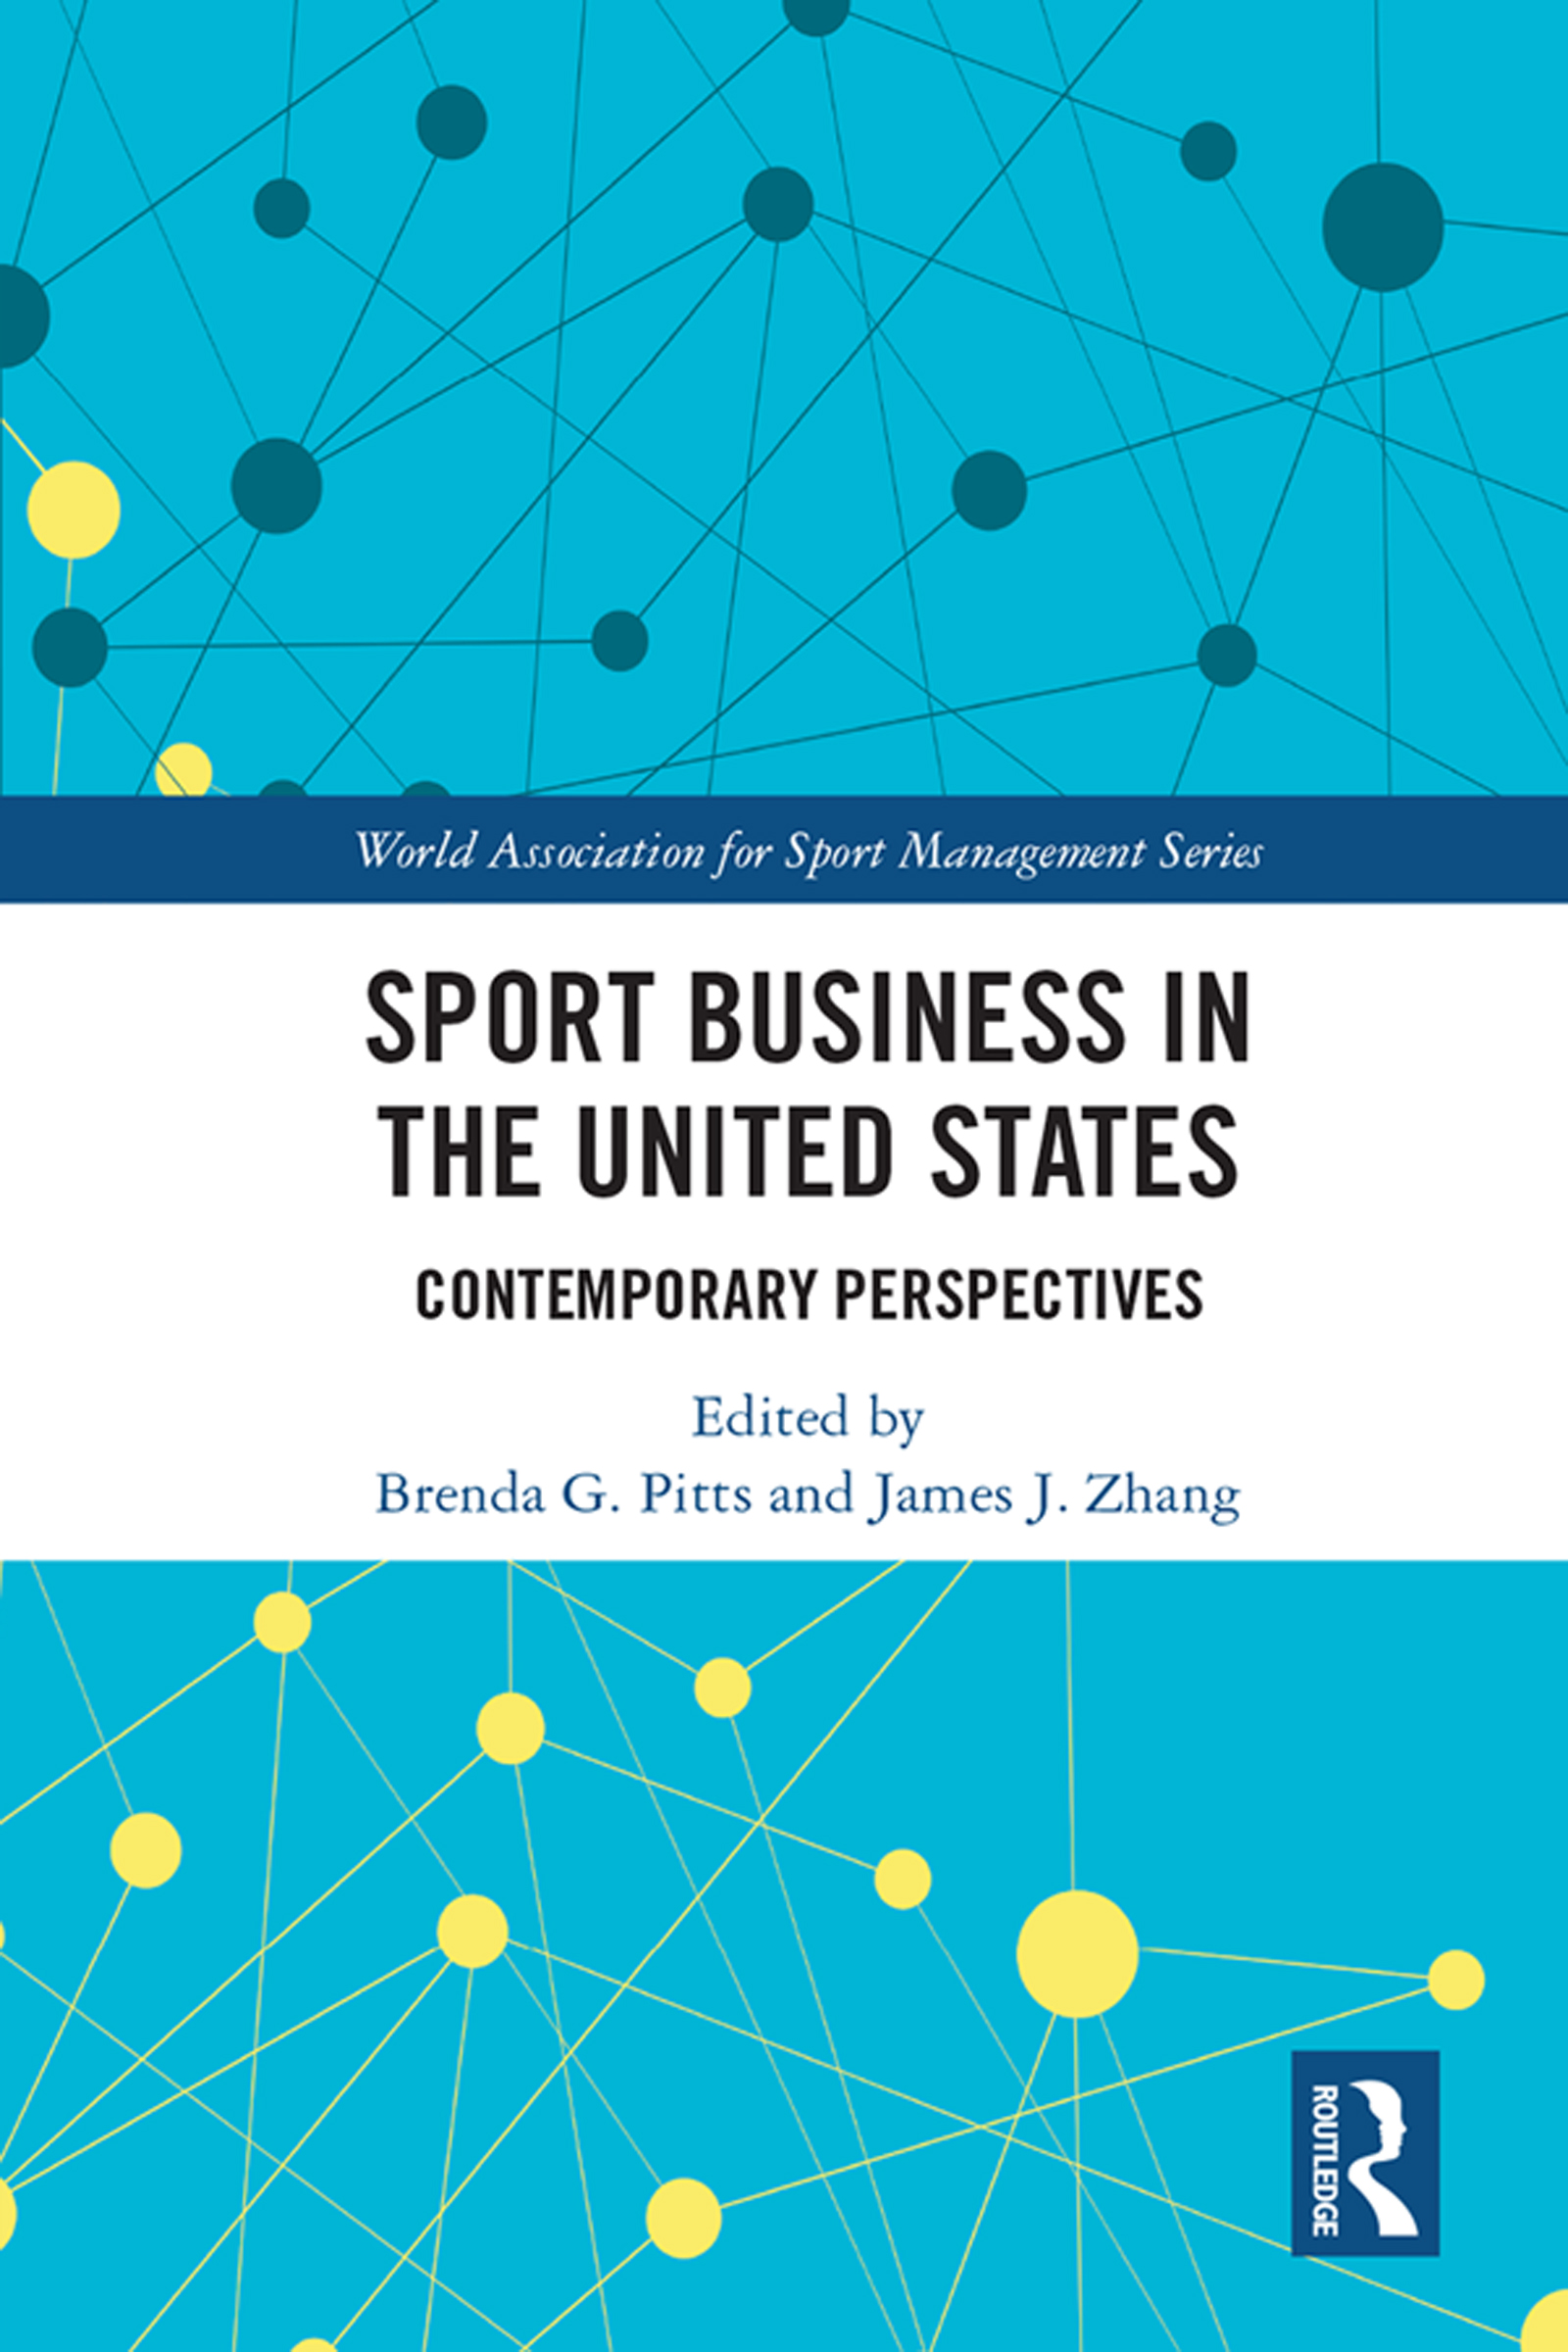 Sport Business in the United States